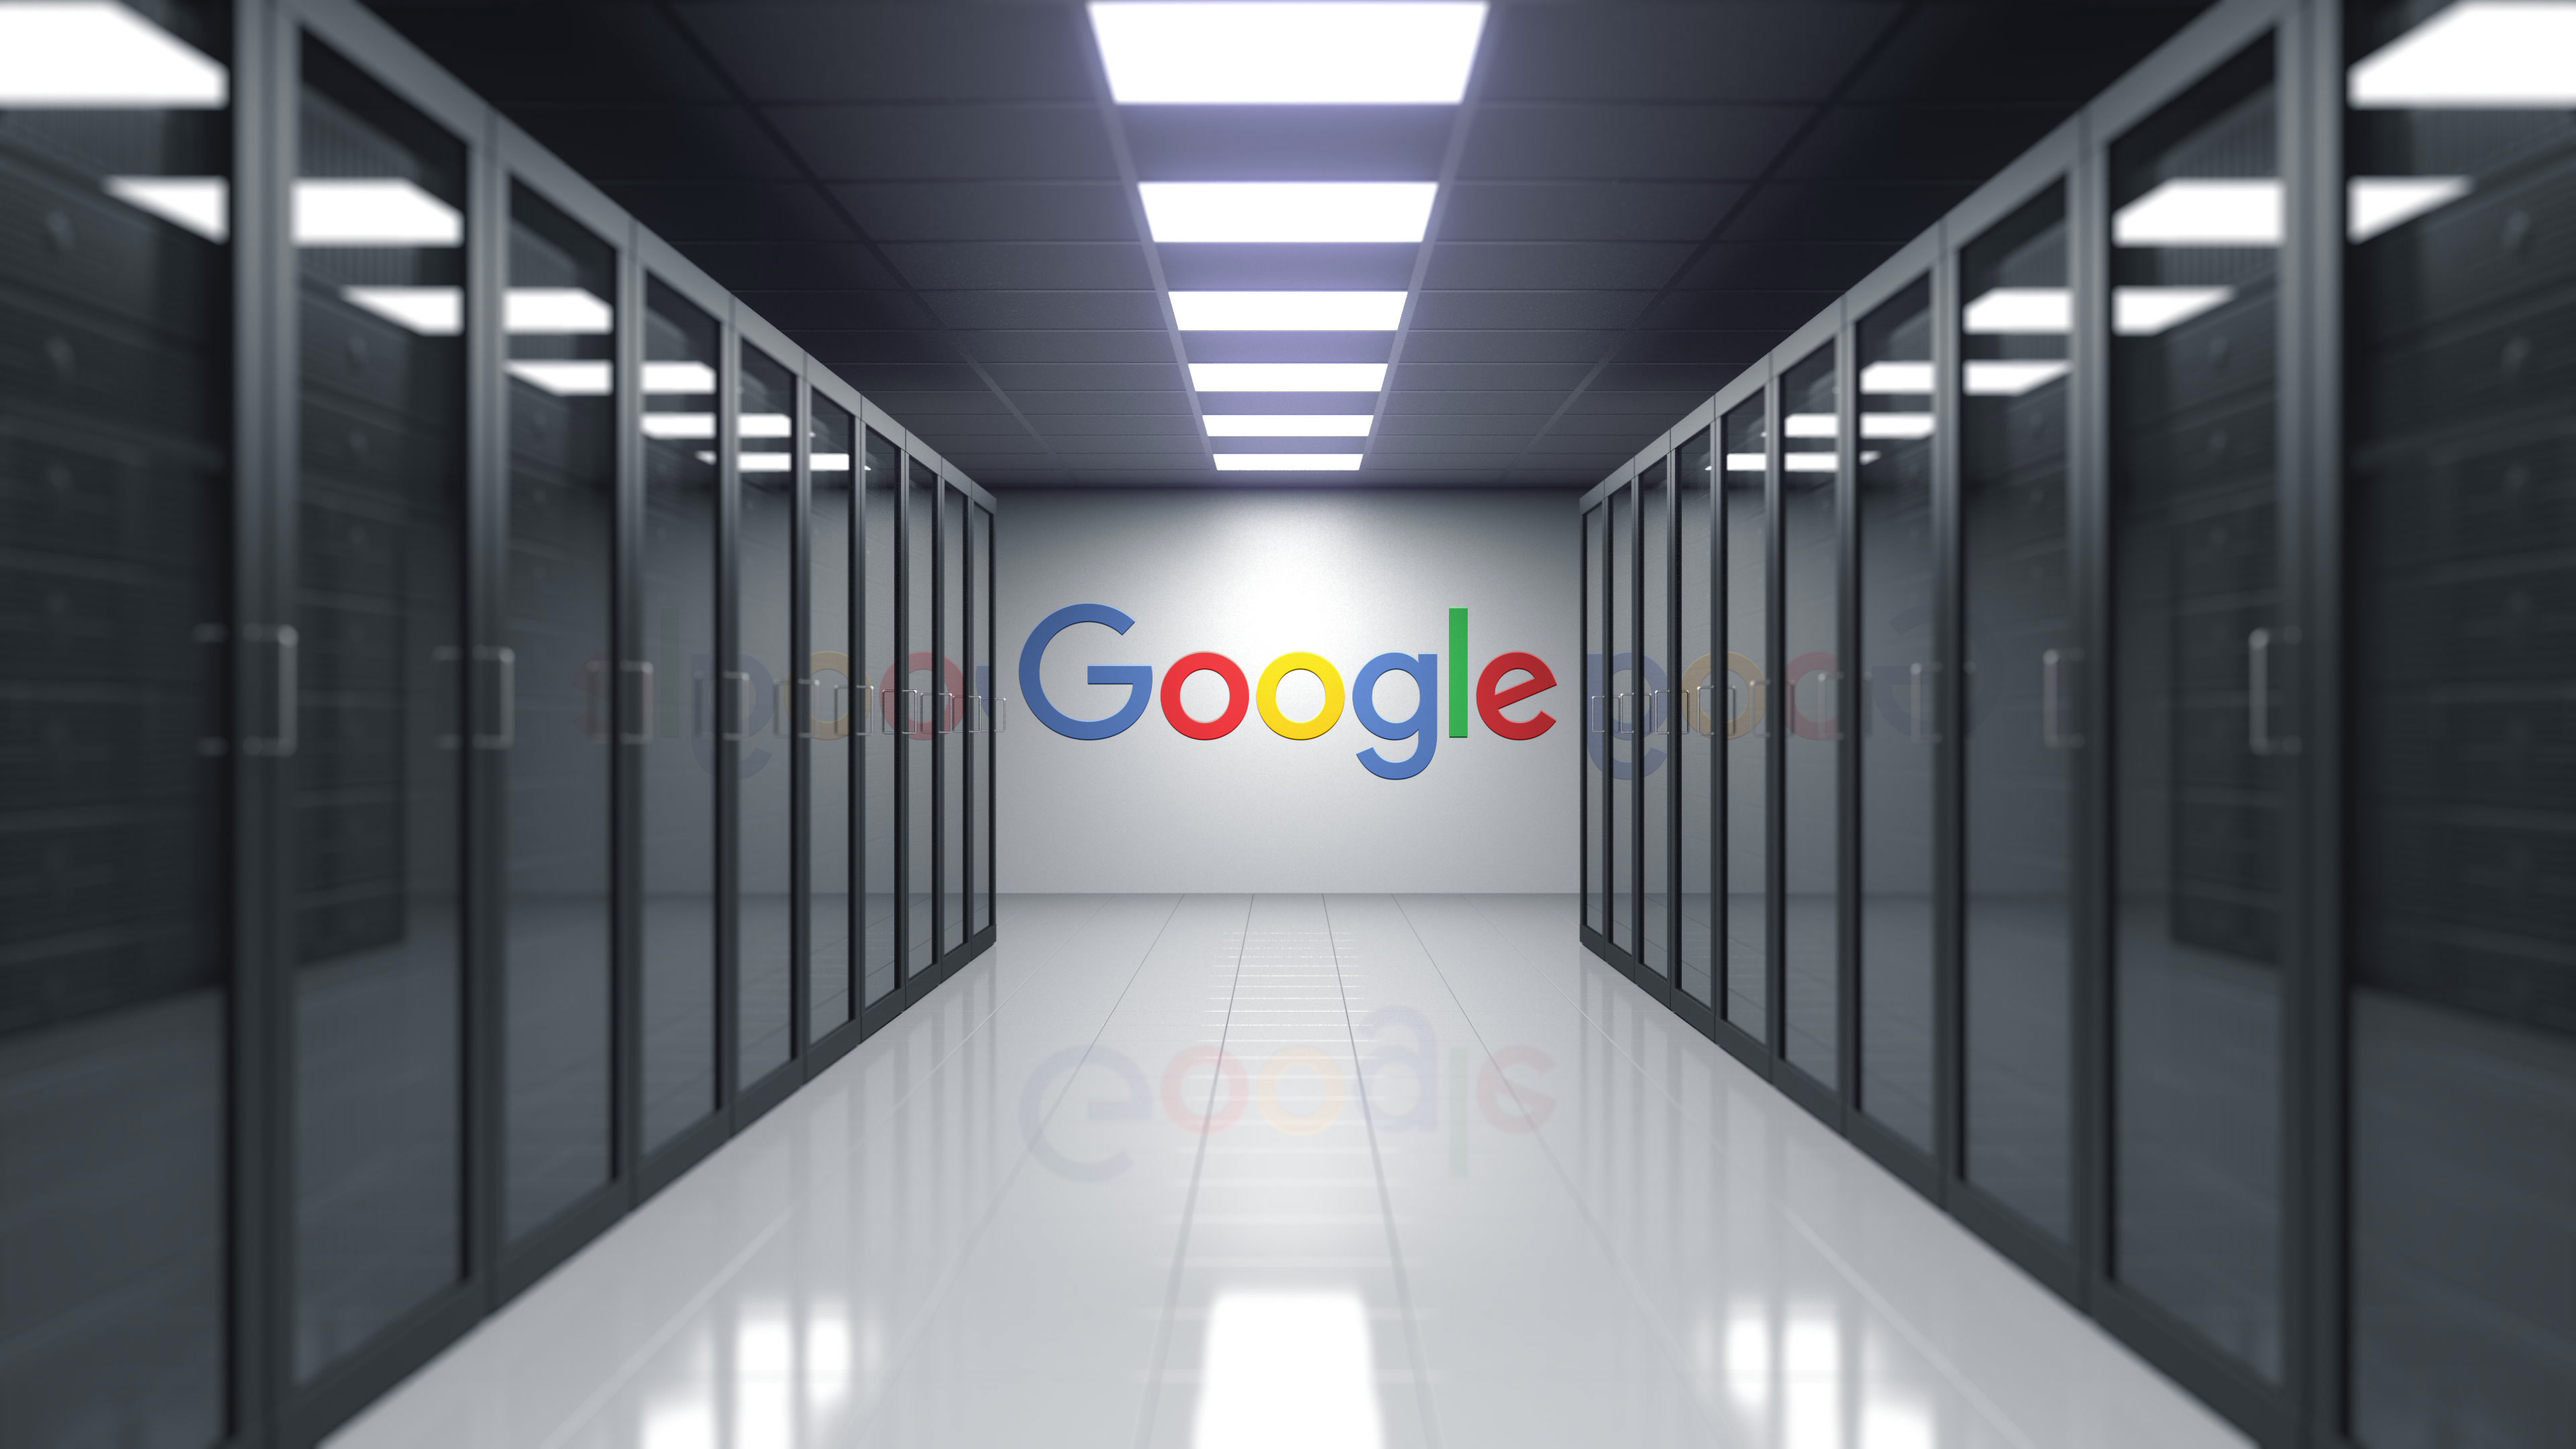 11692366 motionelements google logo on the wall of the server room editorial 3d 0005